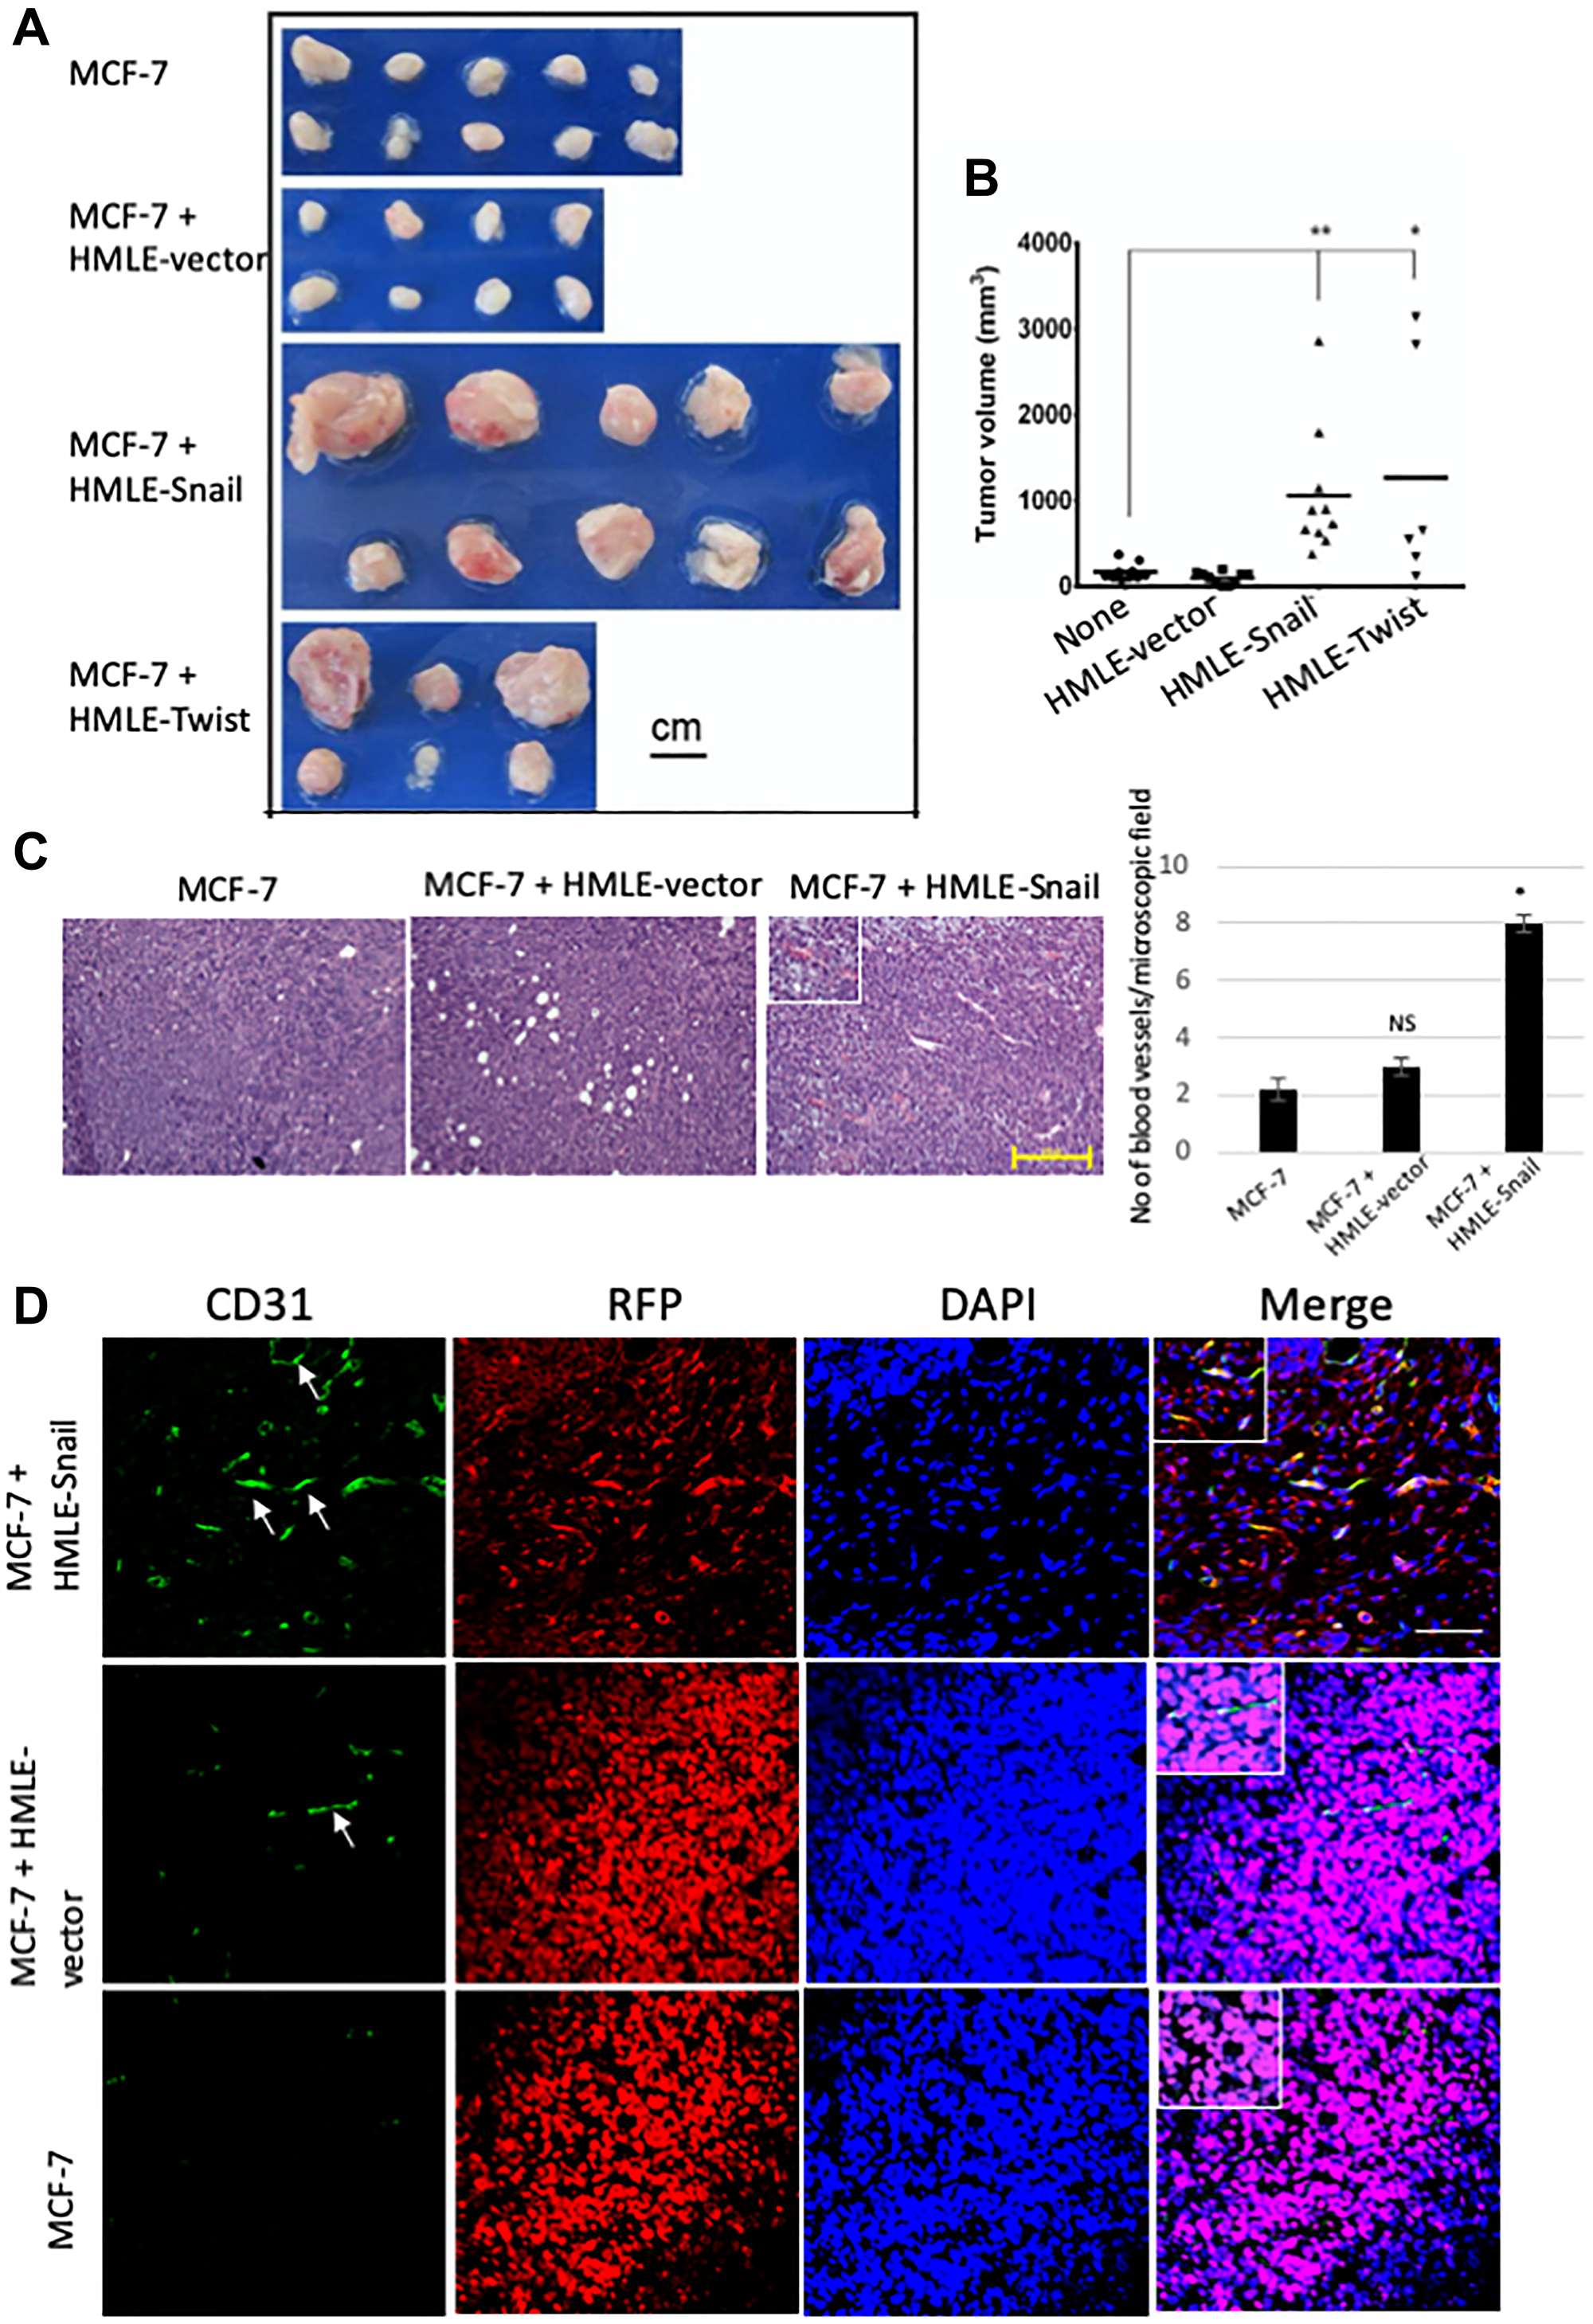 Cells that have undergone EMT promote endothelial transdifferentiation, neovascularization, and outgrowth of admixed MCF-7 cells.